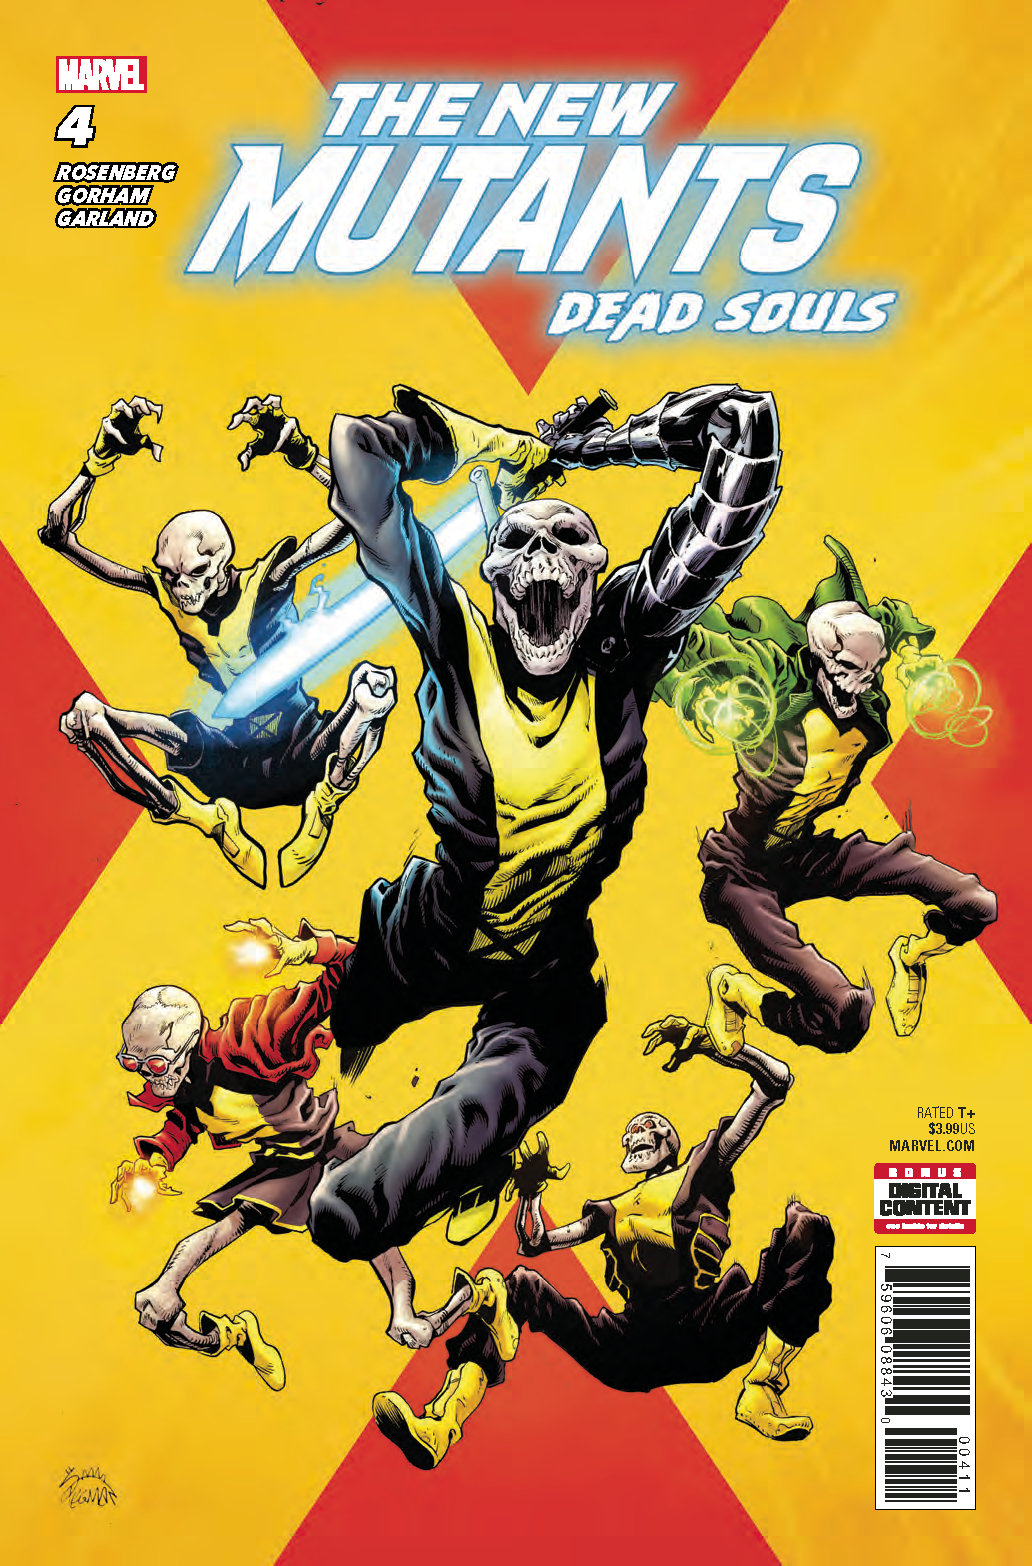 NEW MUTANTS DEAD SOULS #4 (OF 6)